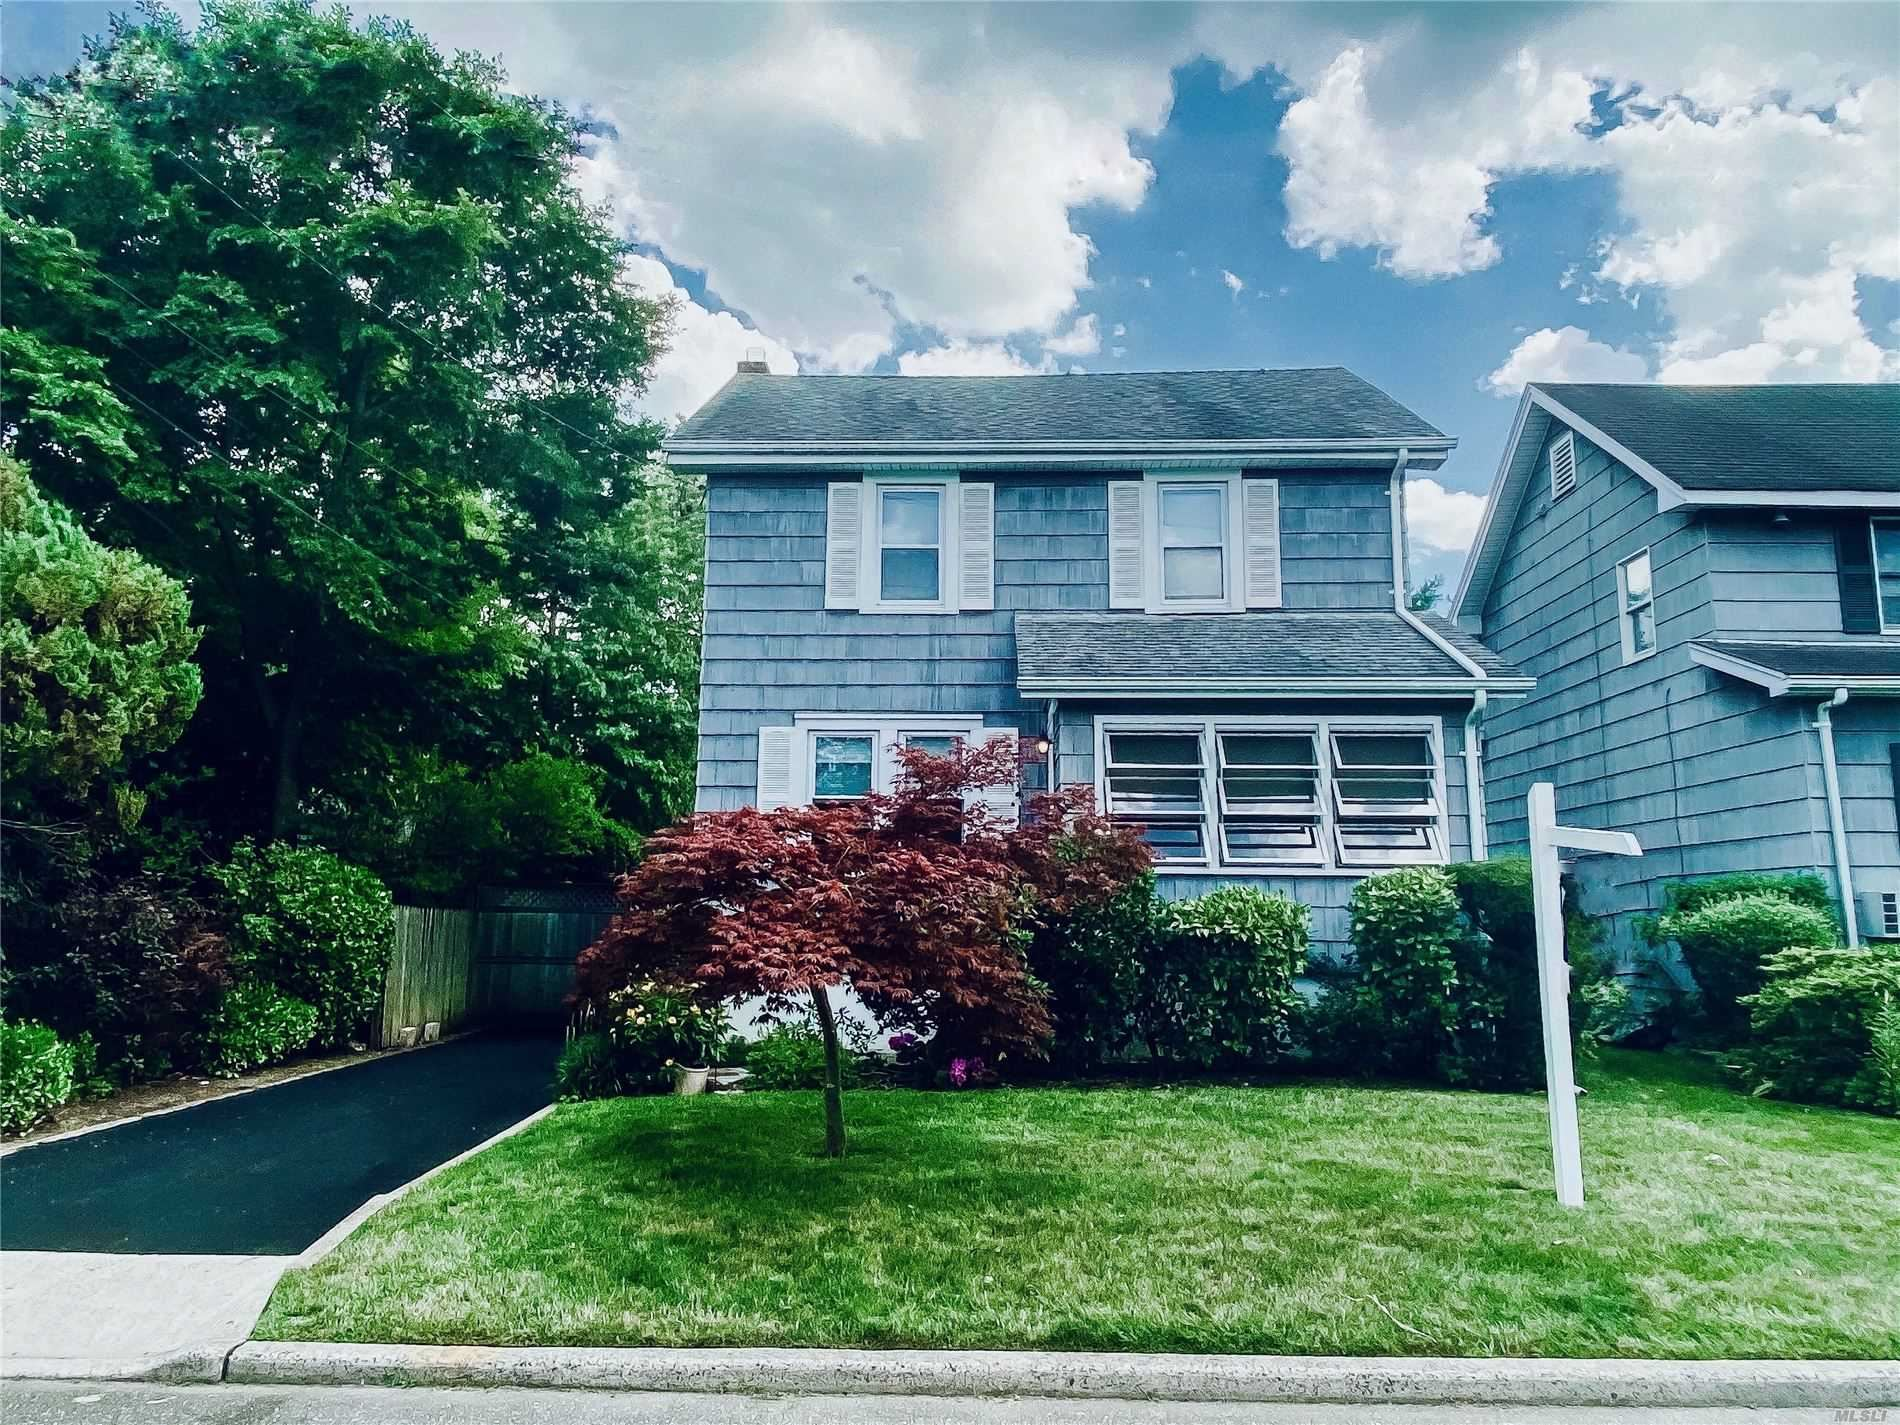 125 Longworth Ave, Woodmere, NY 11598 - MLS#: 3220802